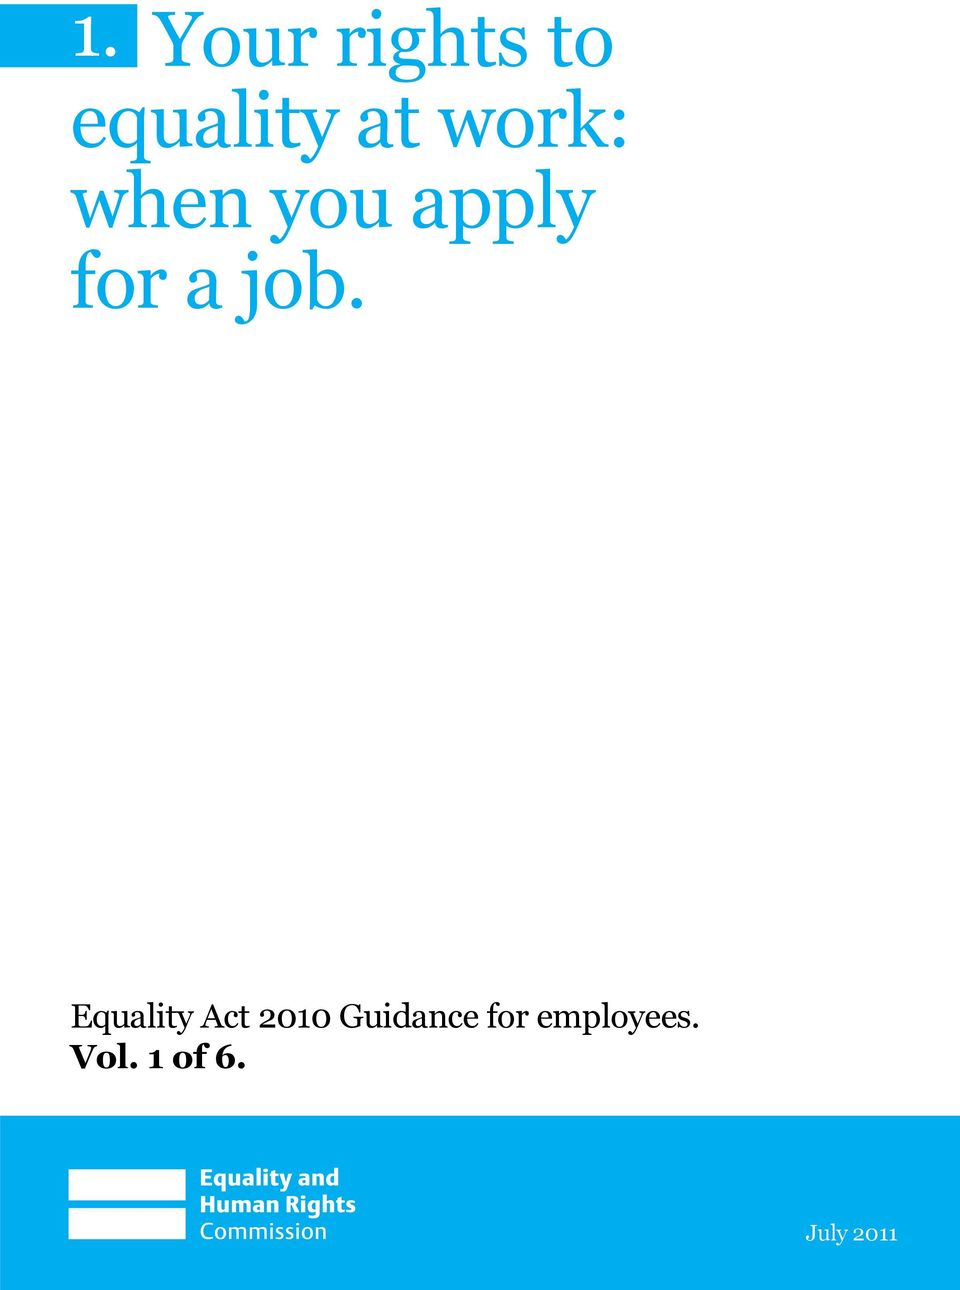 Equality Act 2010 Guidance for